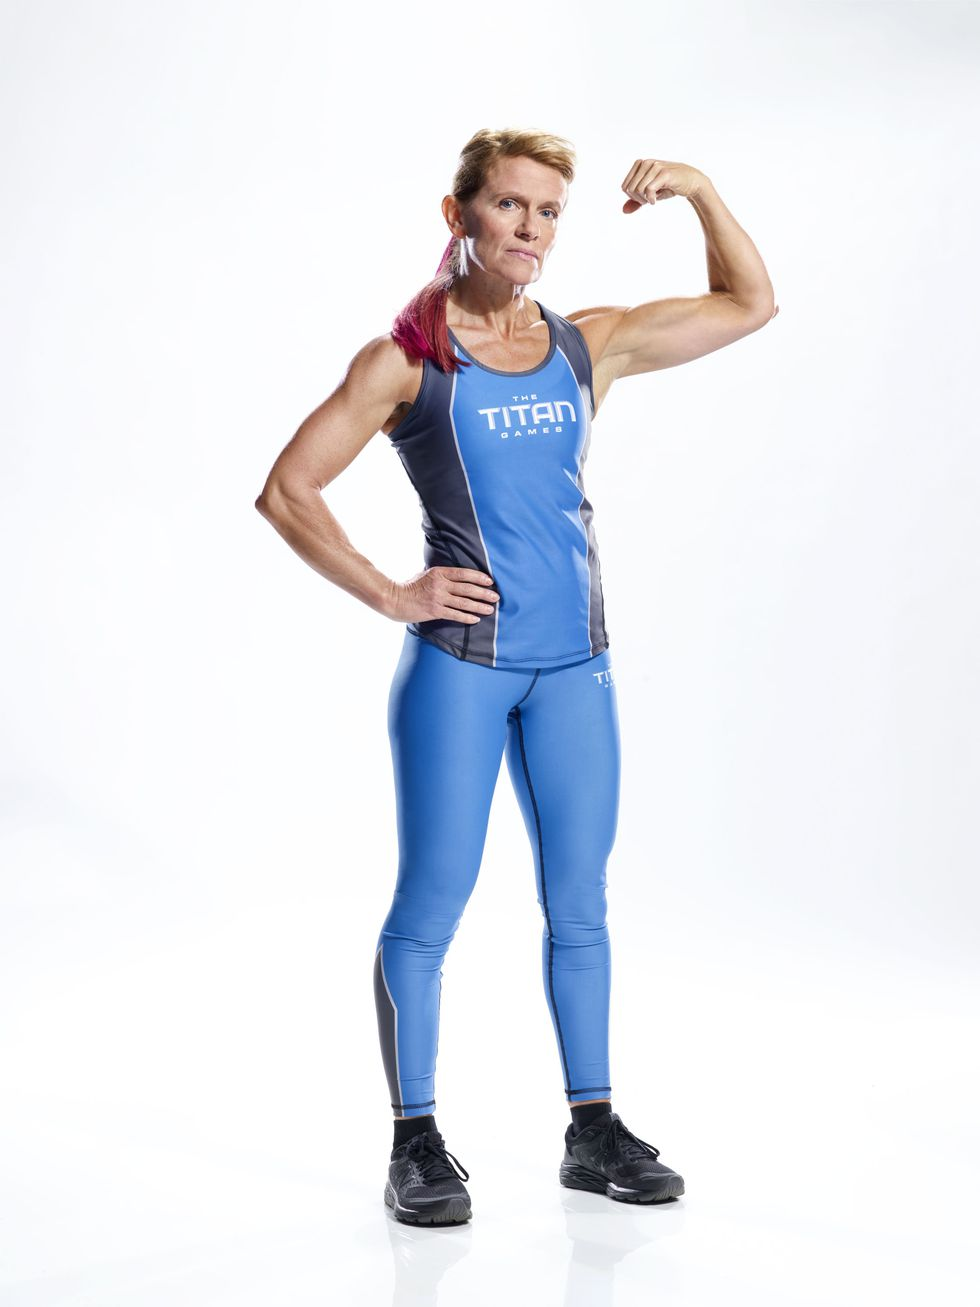 """Sandra Arechaederra - Instagram: @yogaliftersandraTwitter: @sarechaederraSandra is a mother of four whose passion for fitness has pushed her to be a yoga and strength training coach for NFL athletes. She took up Olympic-style weightlifting at 41 despite being only 5'4"""" and 115 pounds. In the 10 years since, she has broken six Masters American records."""